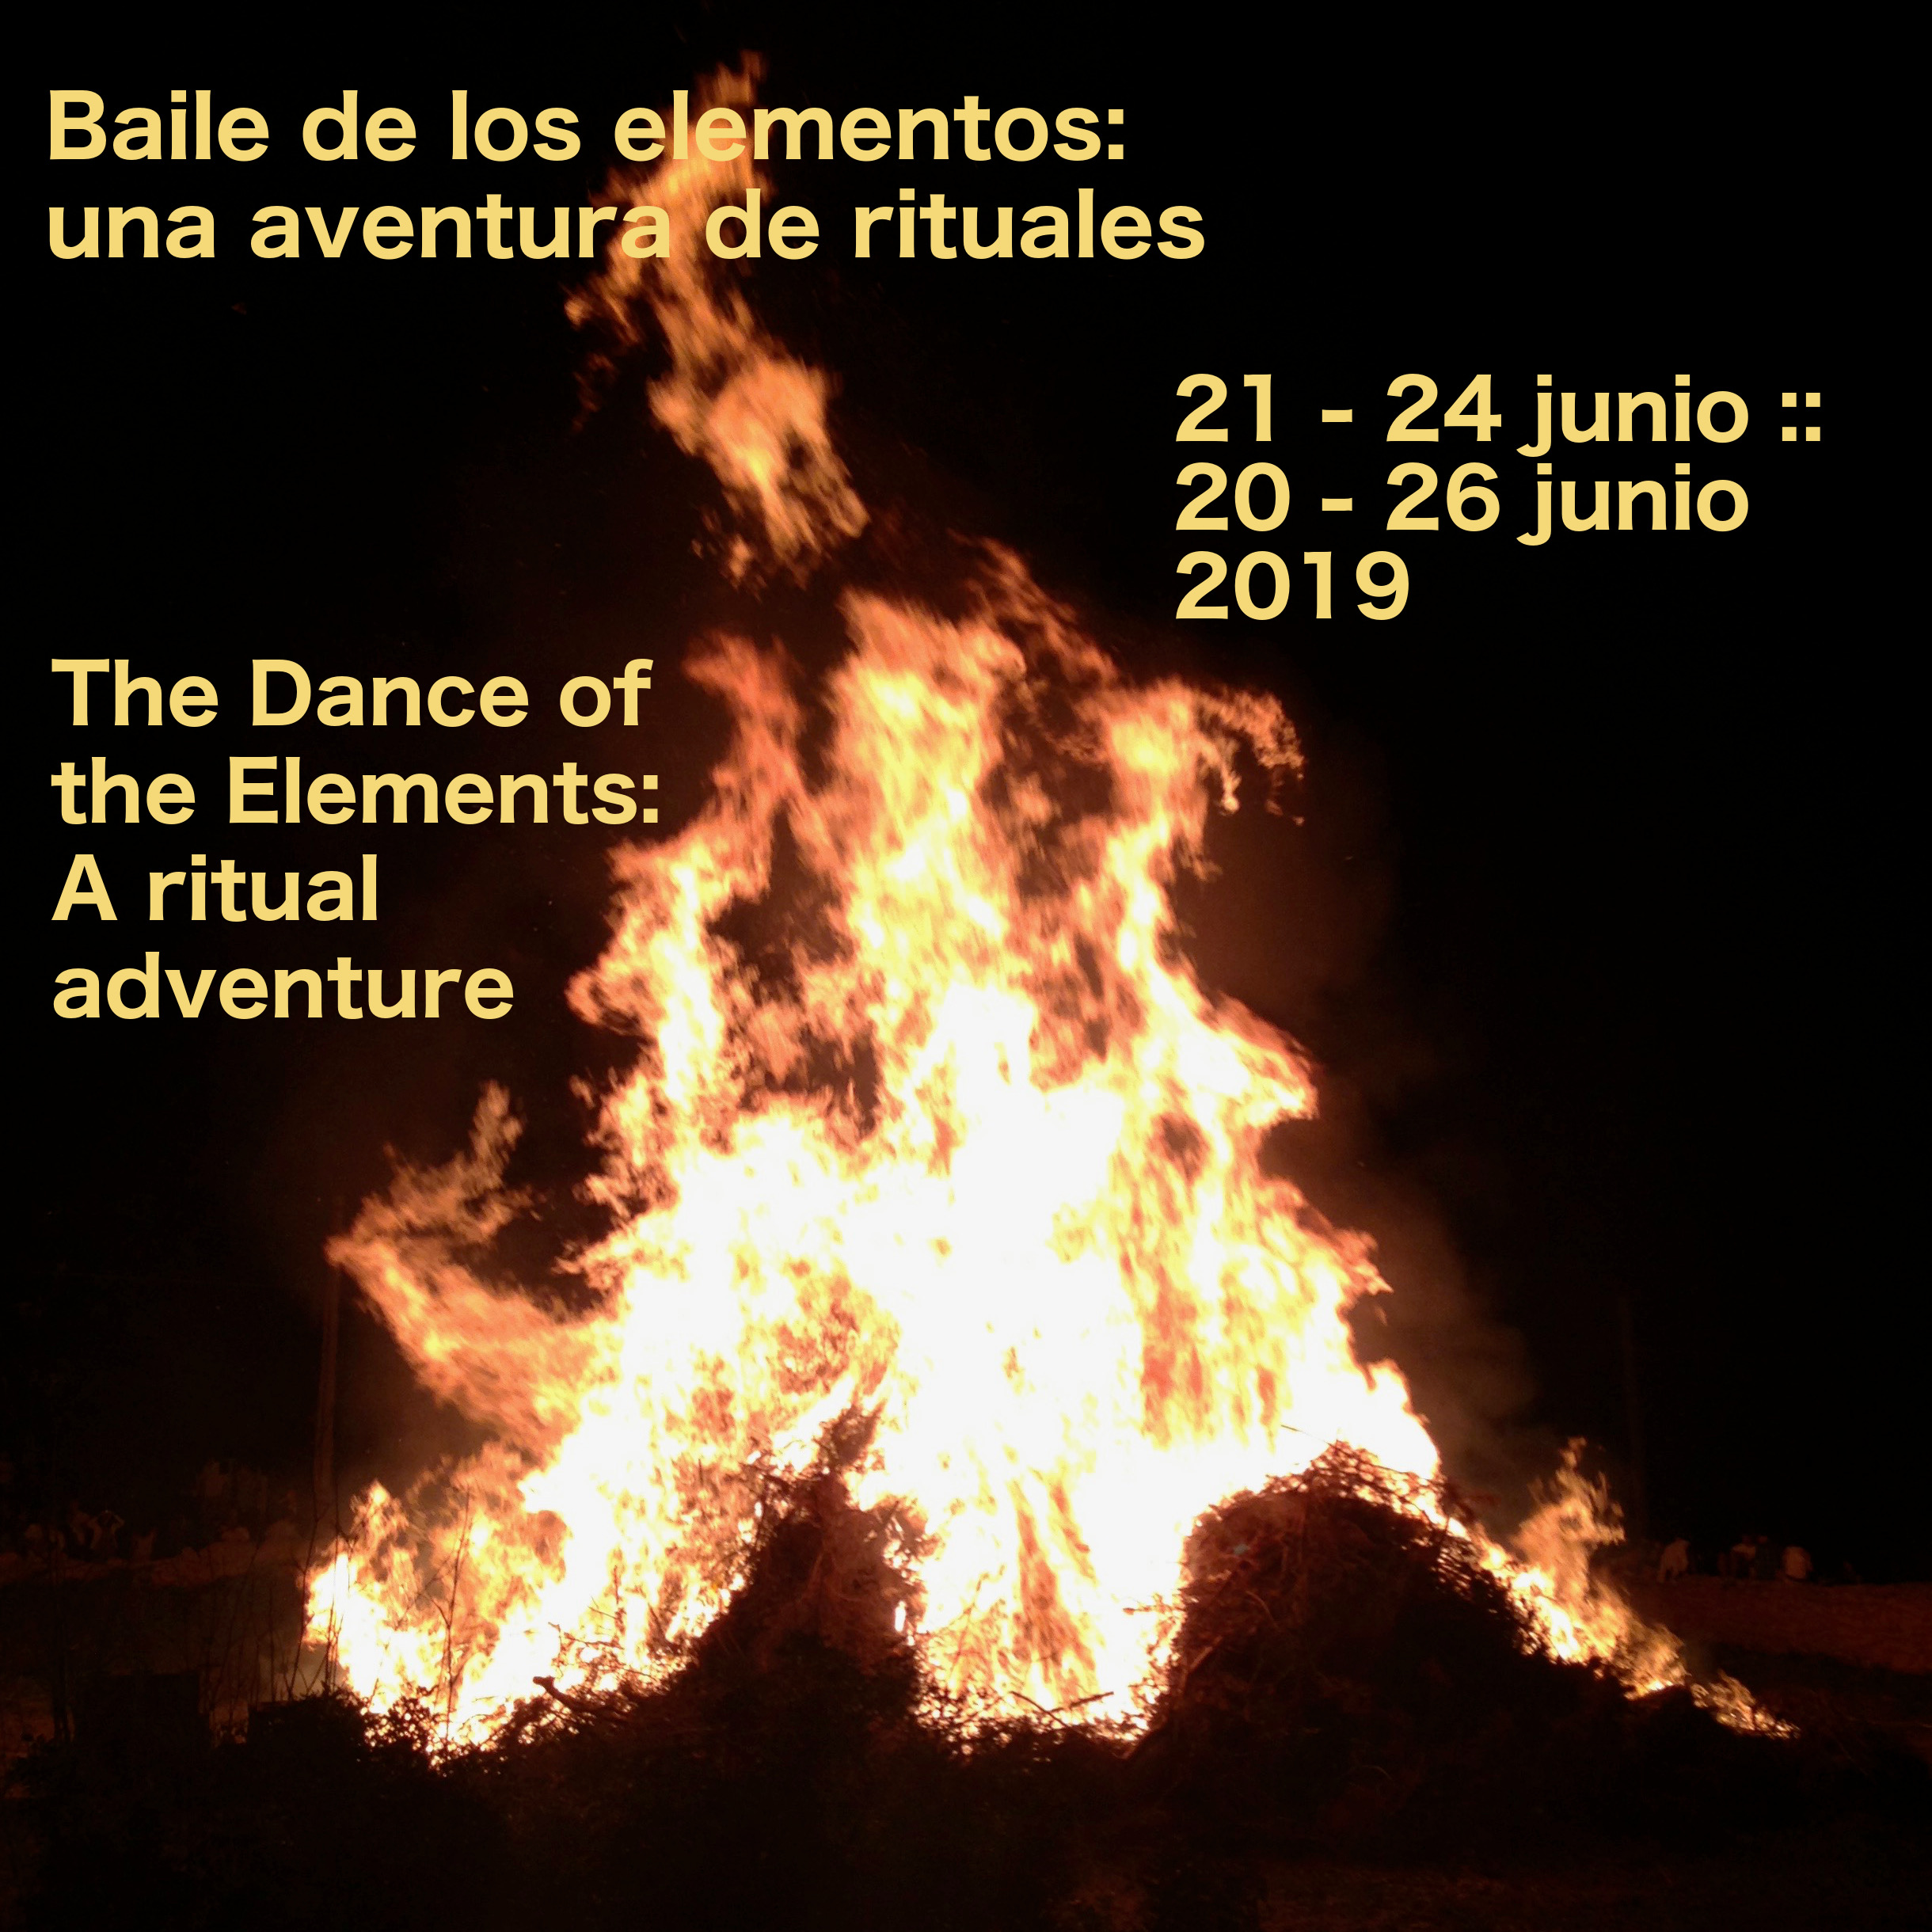 El baile de los elementos: una aventura de rituales :: The Dance of the Elements: A ritual adventure